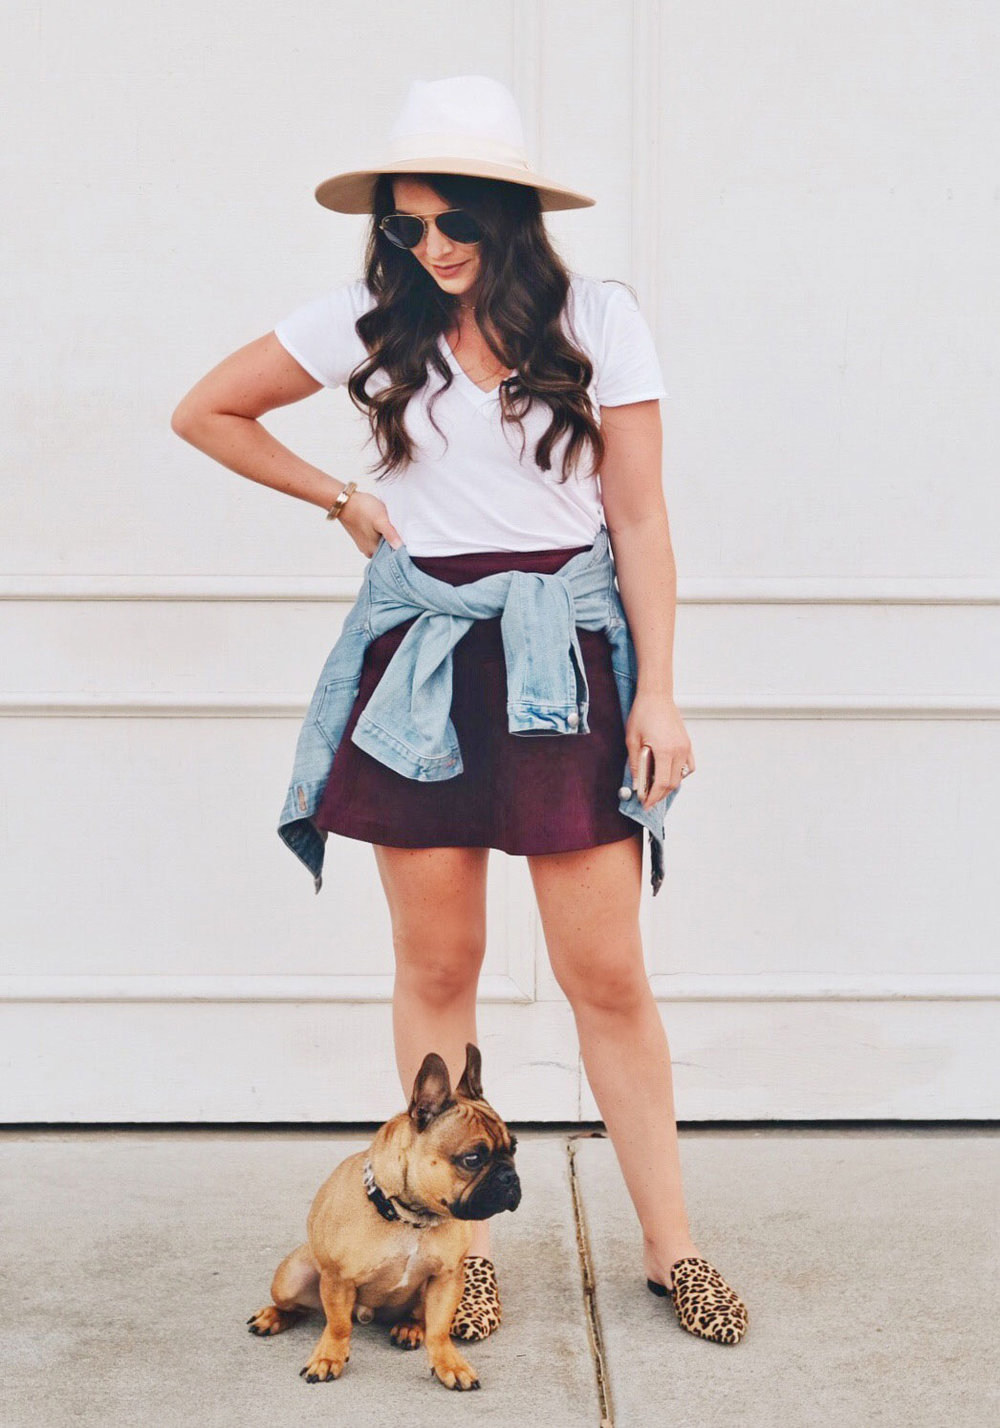 SHOPBOP Sale Fall 2017.  Cute Fall Outfit.  BB Dakota faux suede skirt with leopard slides, white tee, and denim jacket.